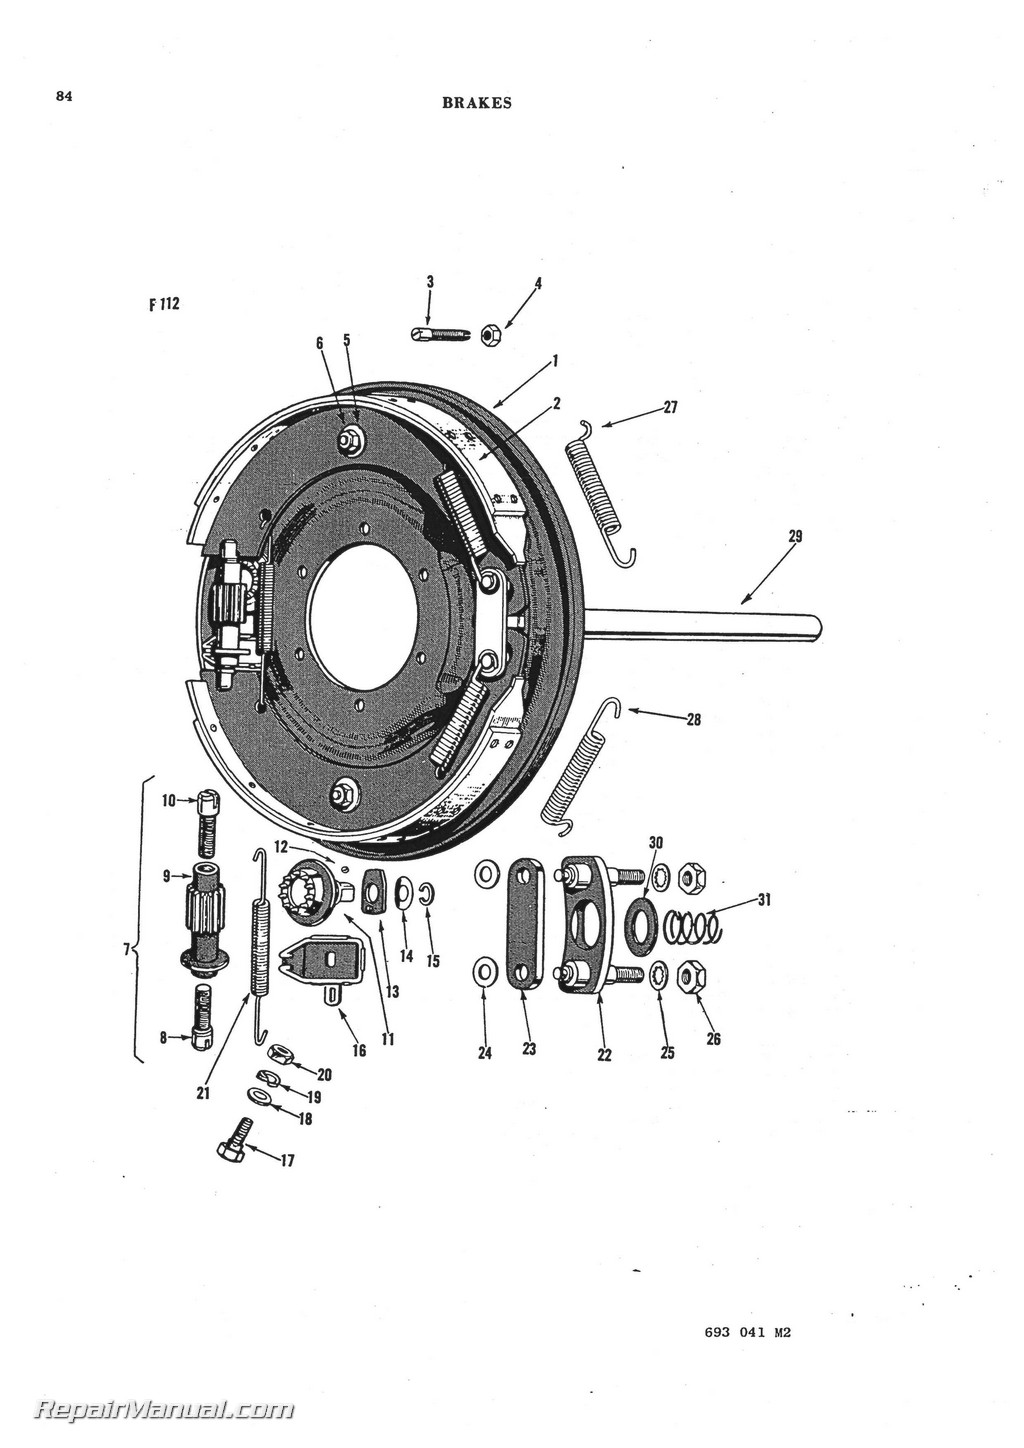 Massey Ferguson TO 30 TO 20 TE 20 TEA 20 Parts Manual_Page_3 massey ferguson to 30 to 20 te 20 tea 20 parts manual